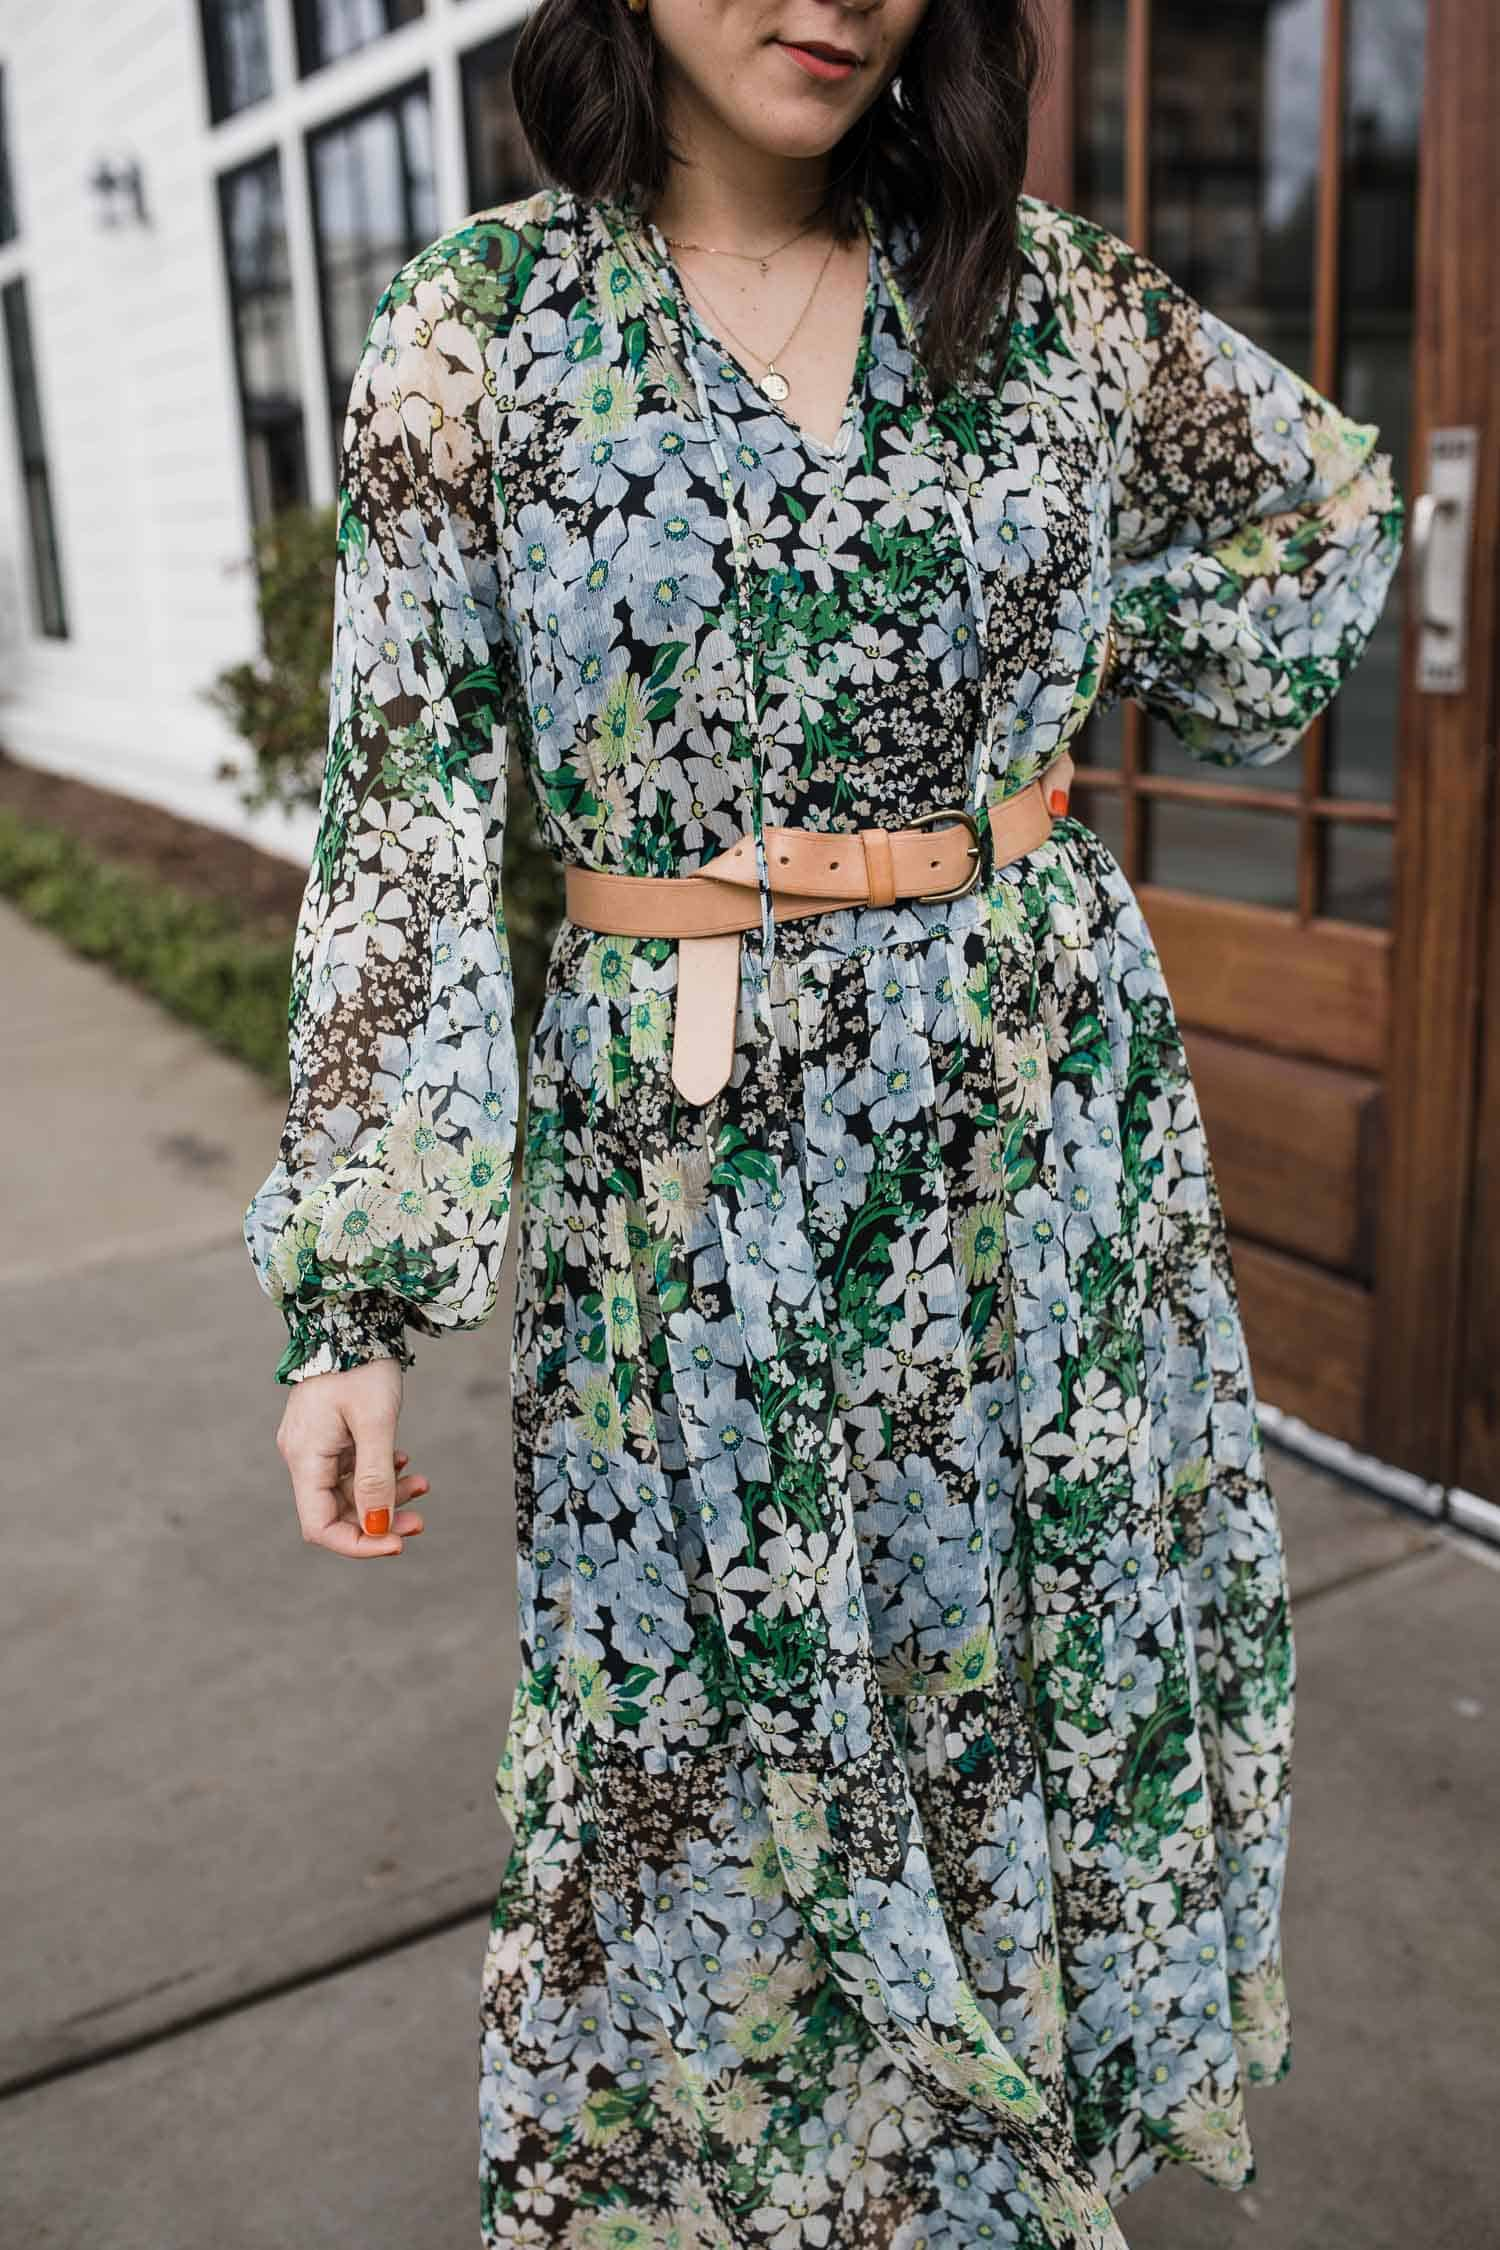 Belted floral dress